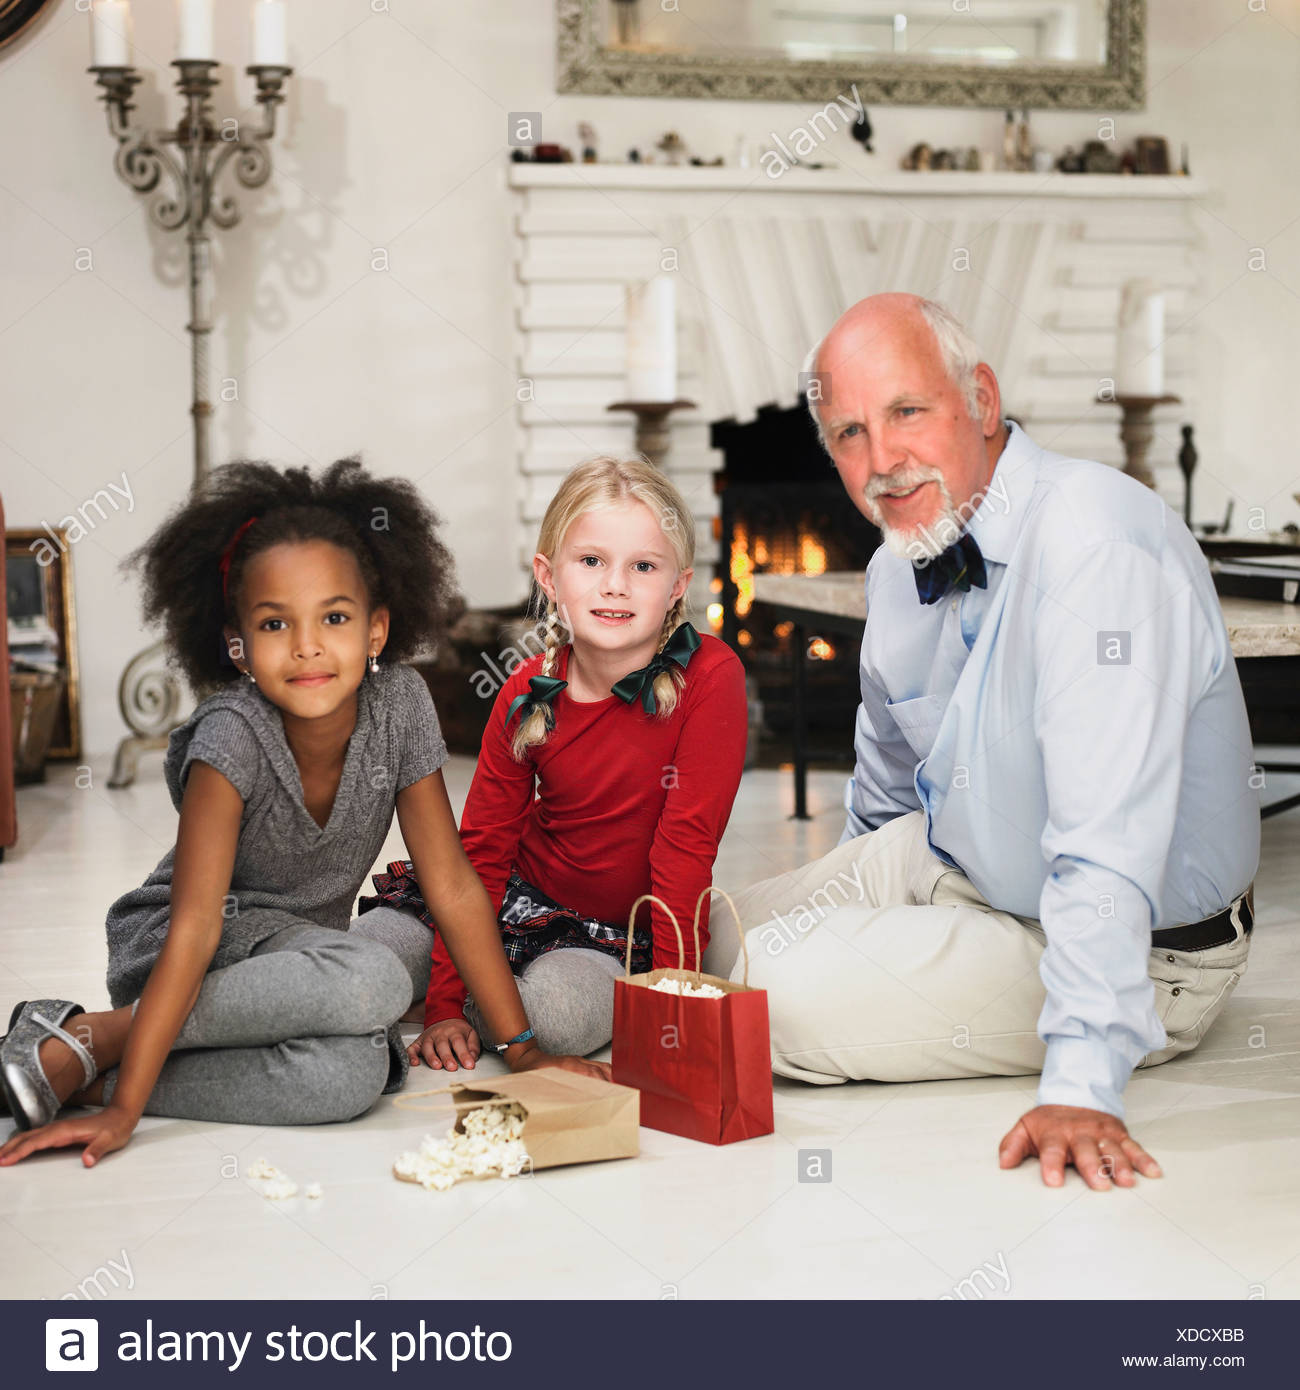 Older Man And Girls With Christmas Gifts Stock Photo 283640543 Alamy